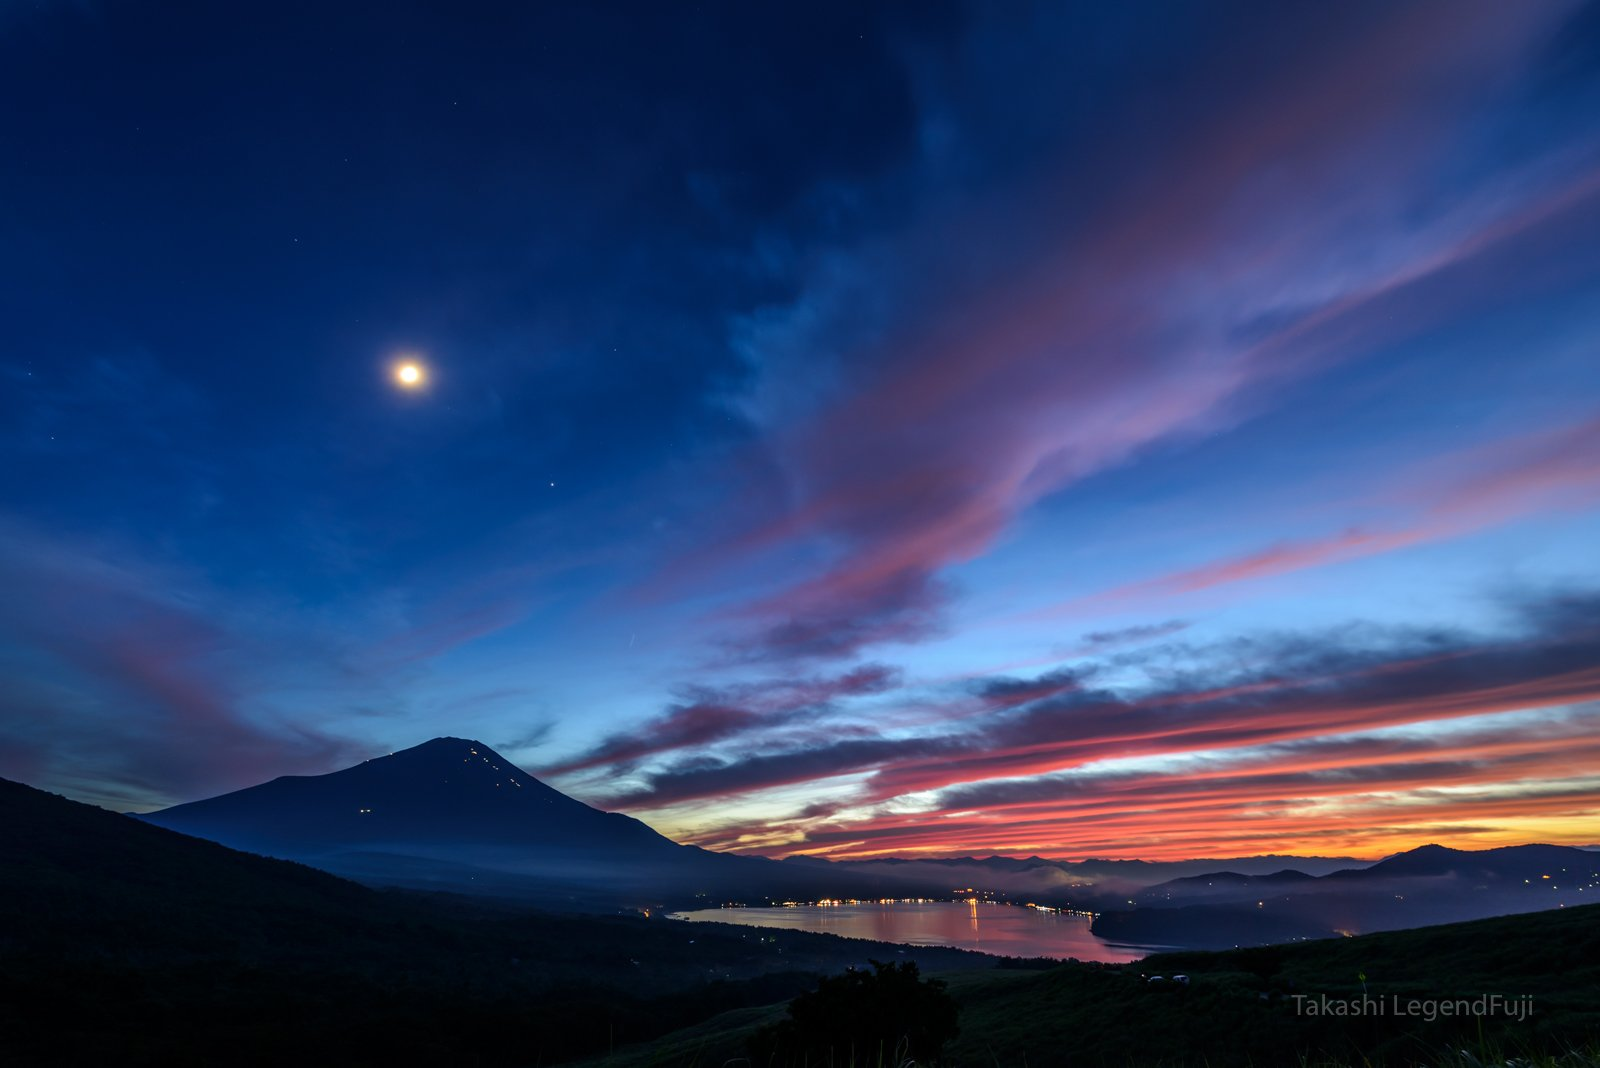 Fuji,mountain,Japan,cloud,sunset,night,red,blue,lake,moon,luna,, Takashi